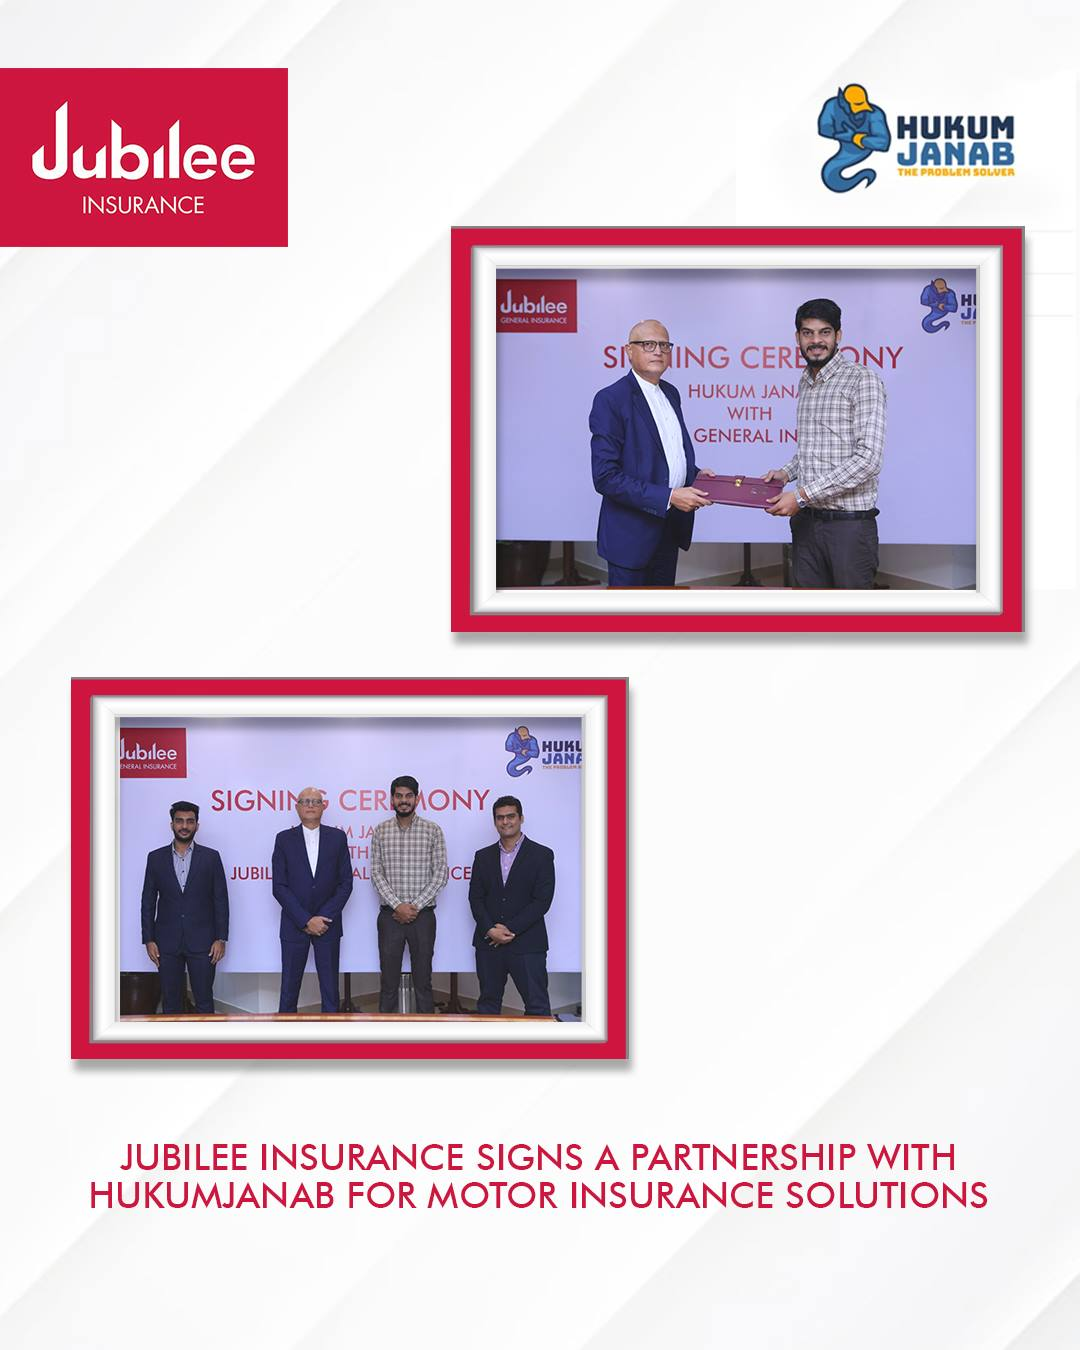 Jubilee General Insurance Partners with HukumJanab